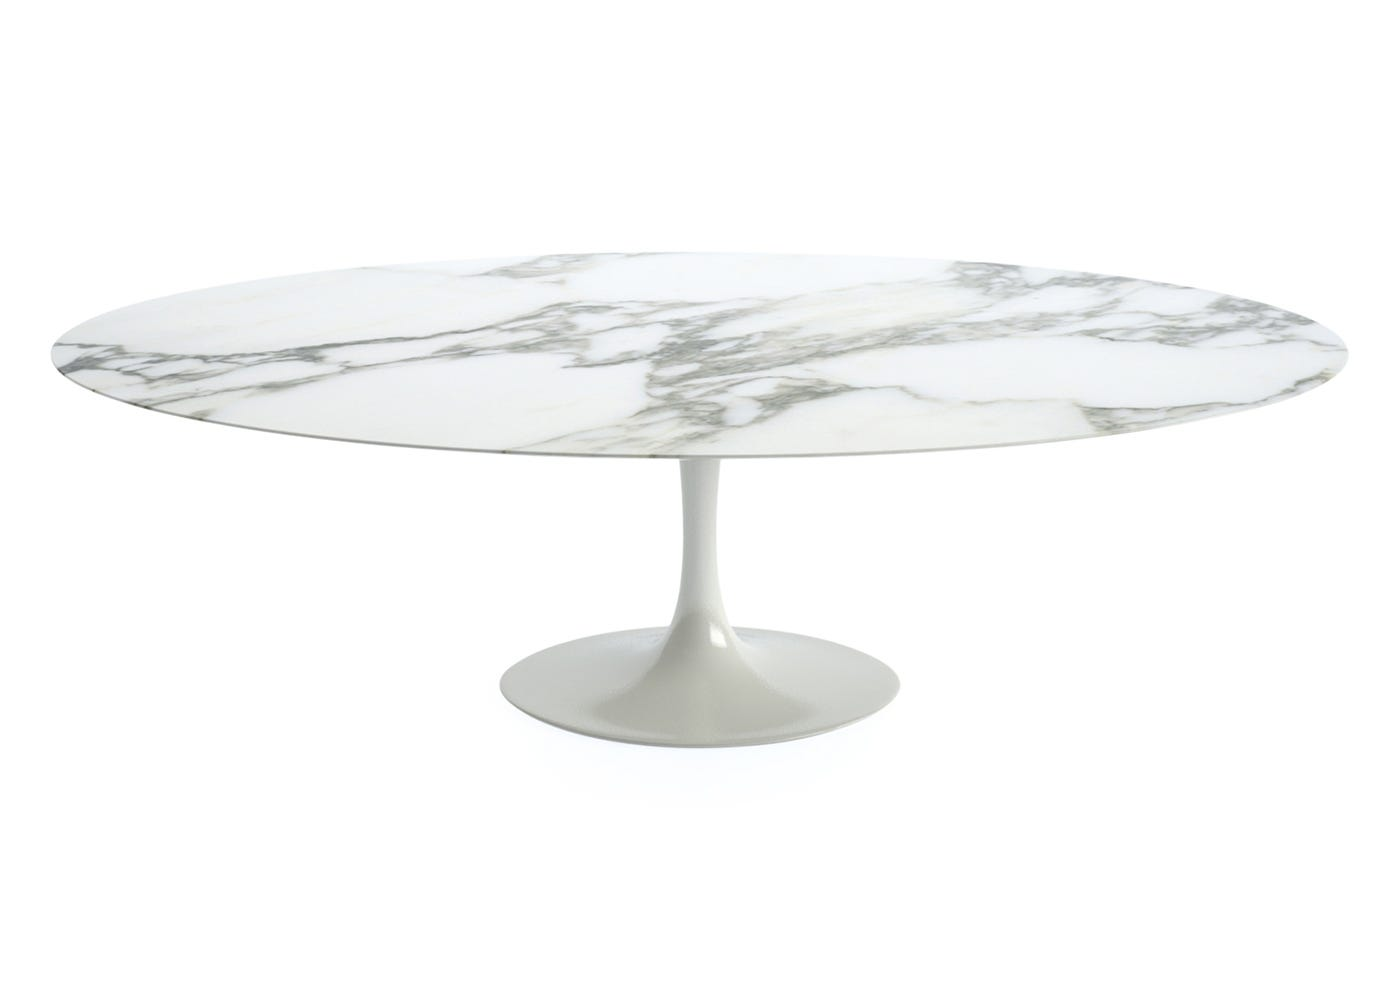 Saarinen Oval Dining Table Extra Large With Calacatta Coated Marble Top